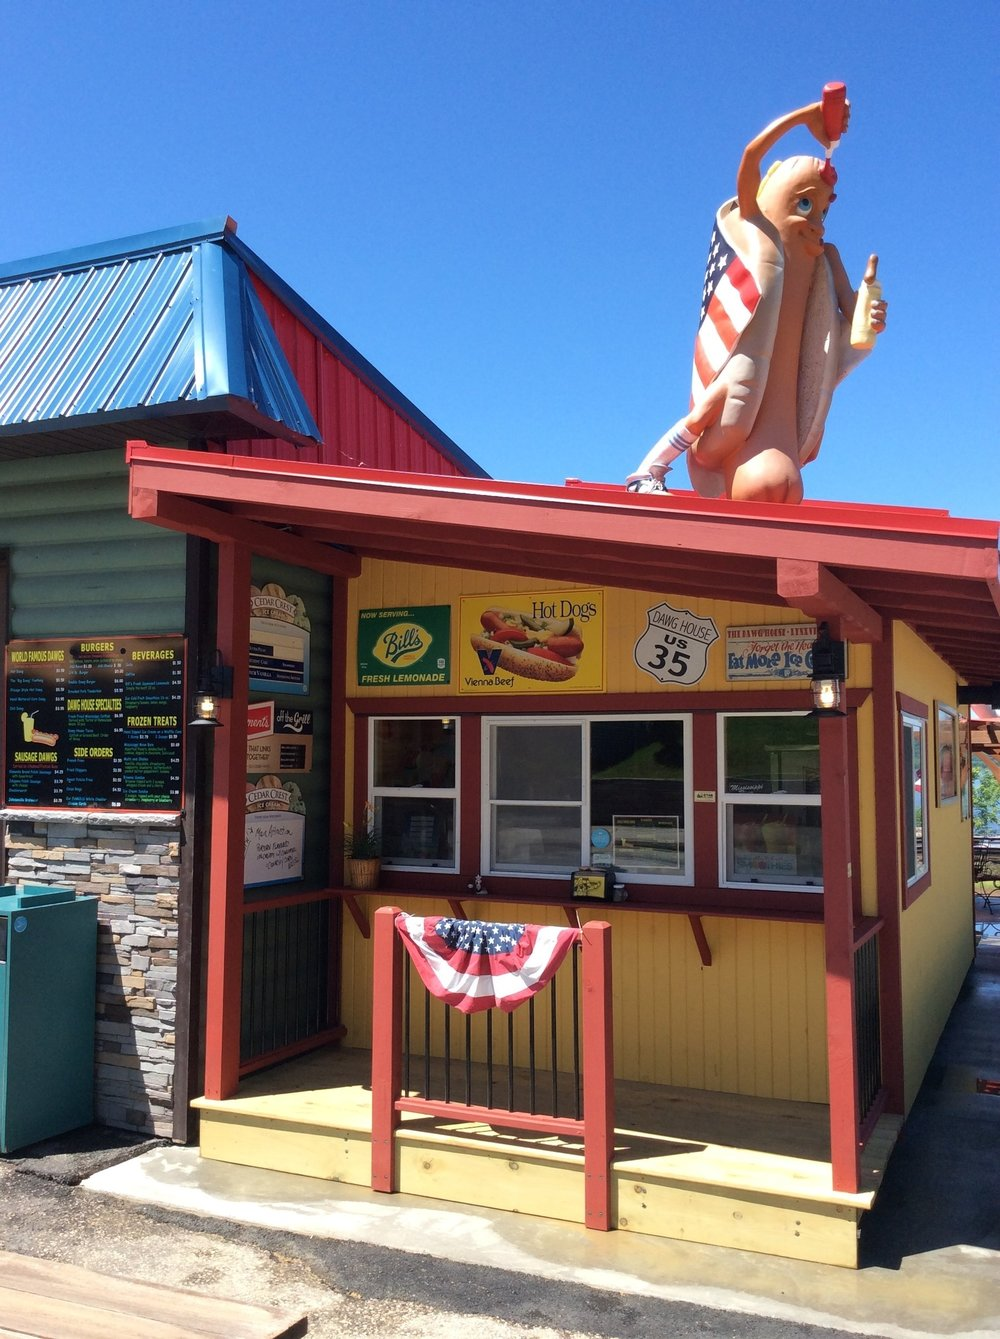 DAWG HOUSE   - HIGHWAY 35, LYNXVILLEHot  dogs, Fresh lemon lemonade, etc.